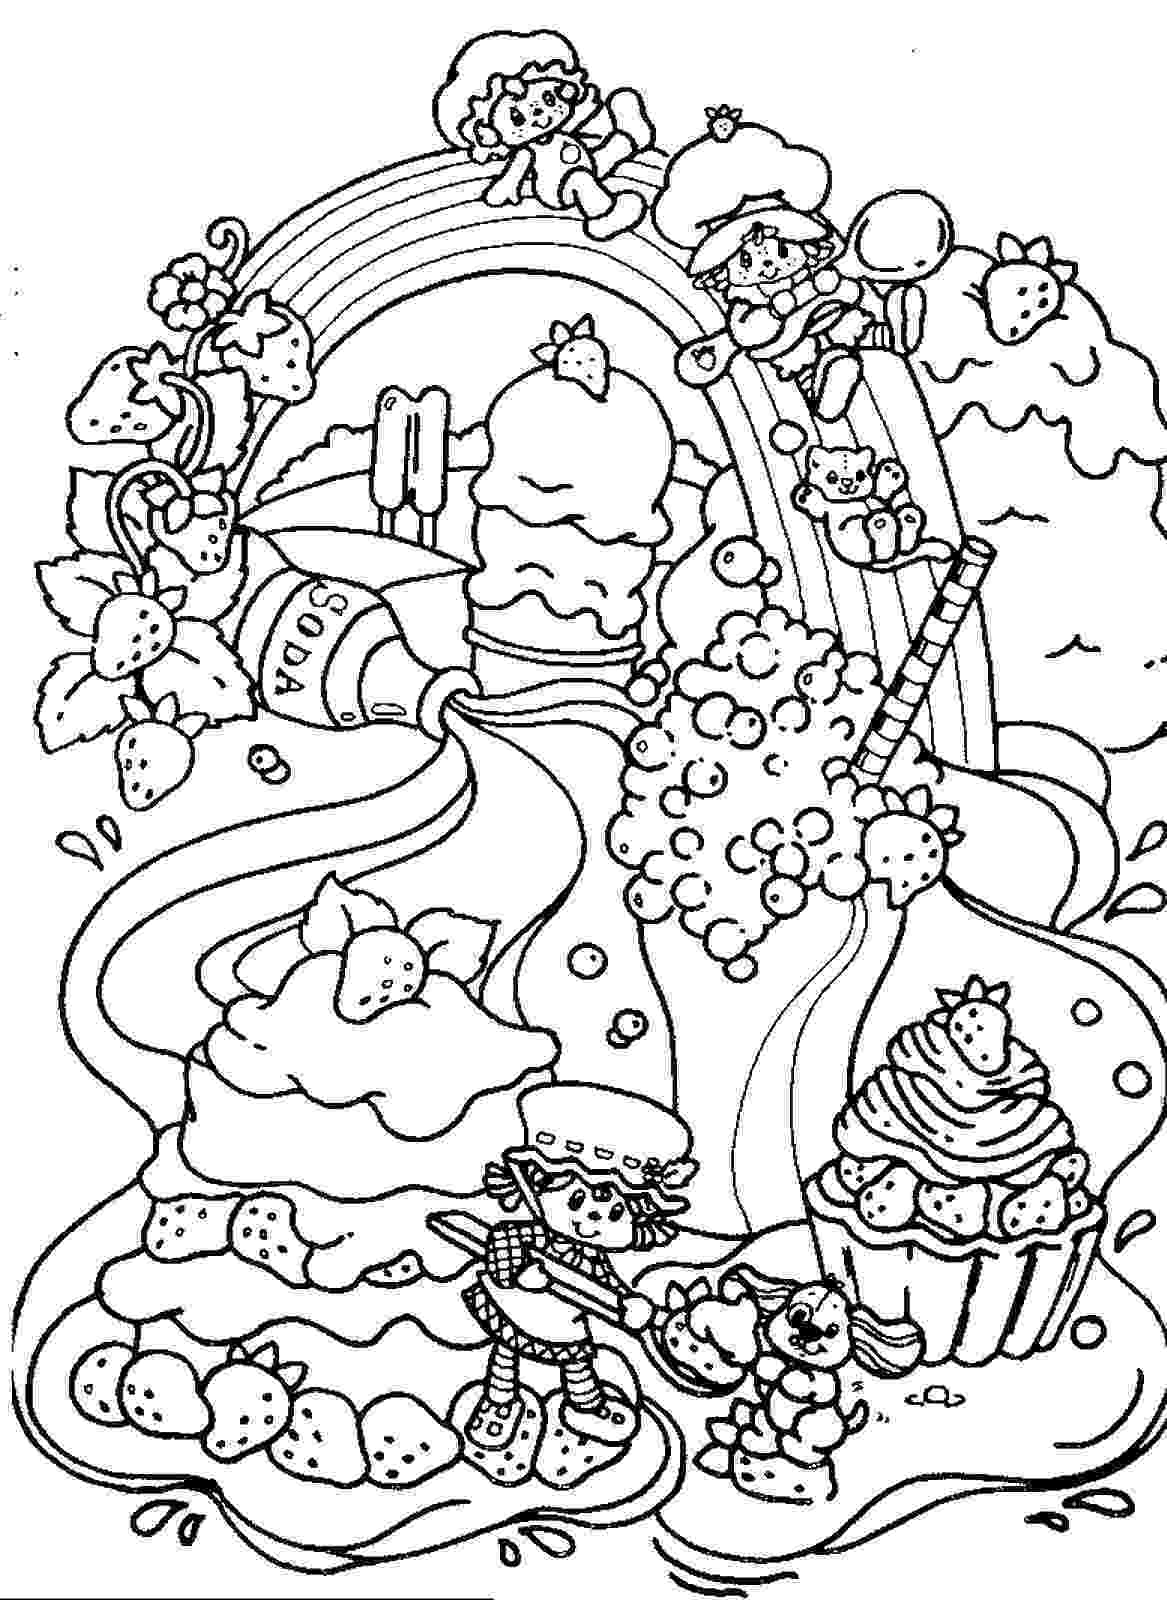 strawberry shortcake printable coloring pages strawberry shortcake coloring pages coloring pages strawberry printable shortcake pages coloring